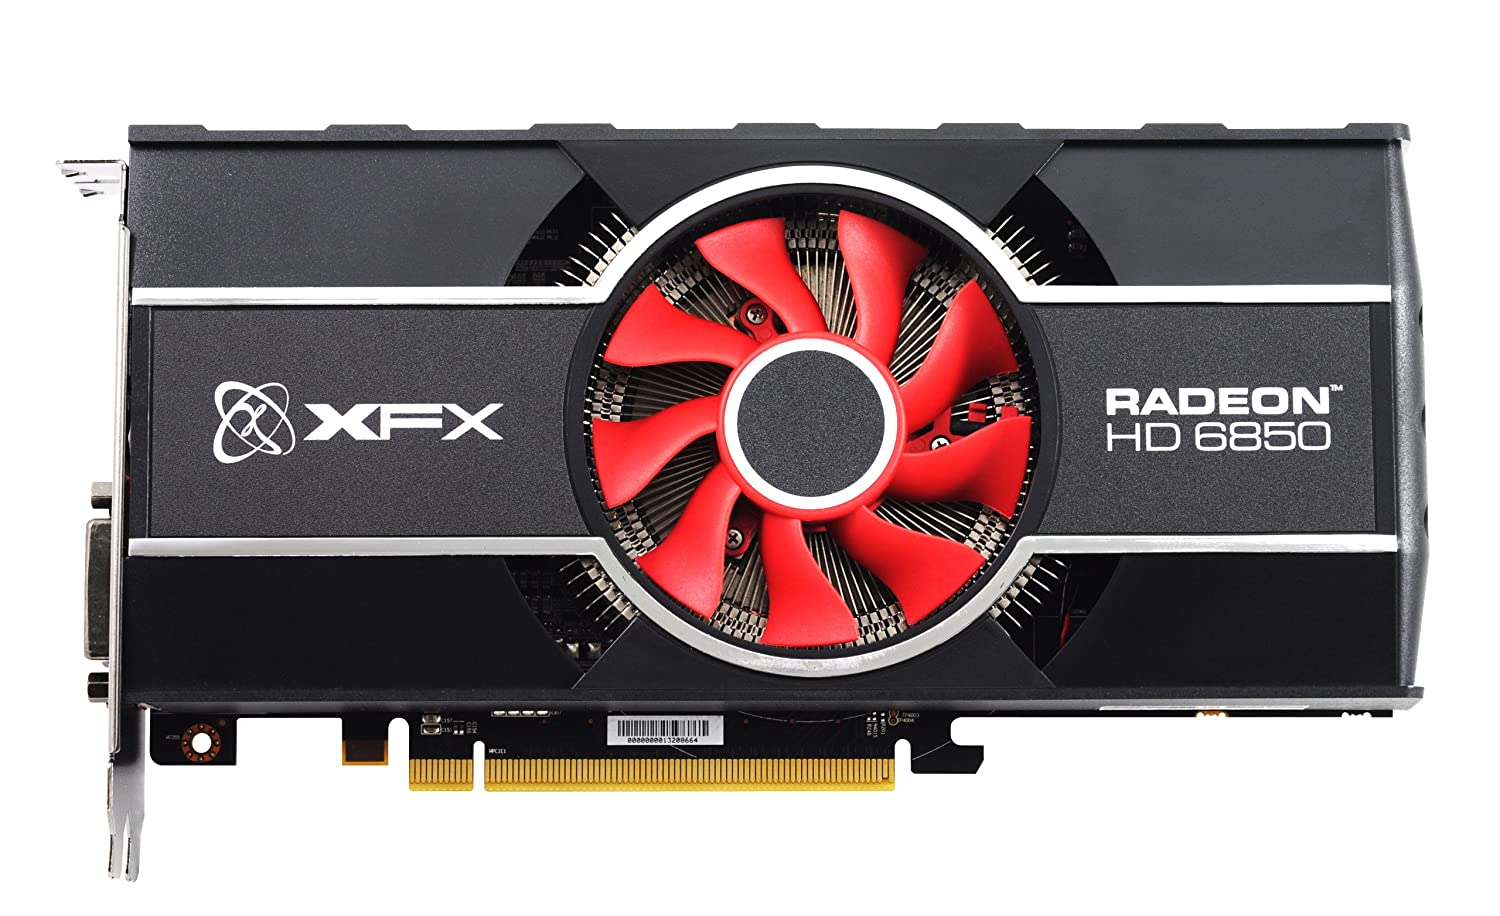 AMD Radeon HD 6800 Series: Testing and Characterization